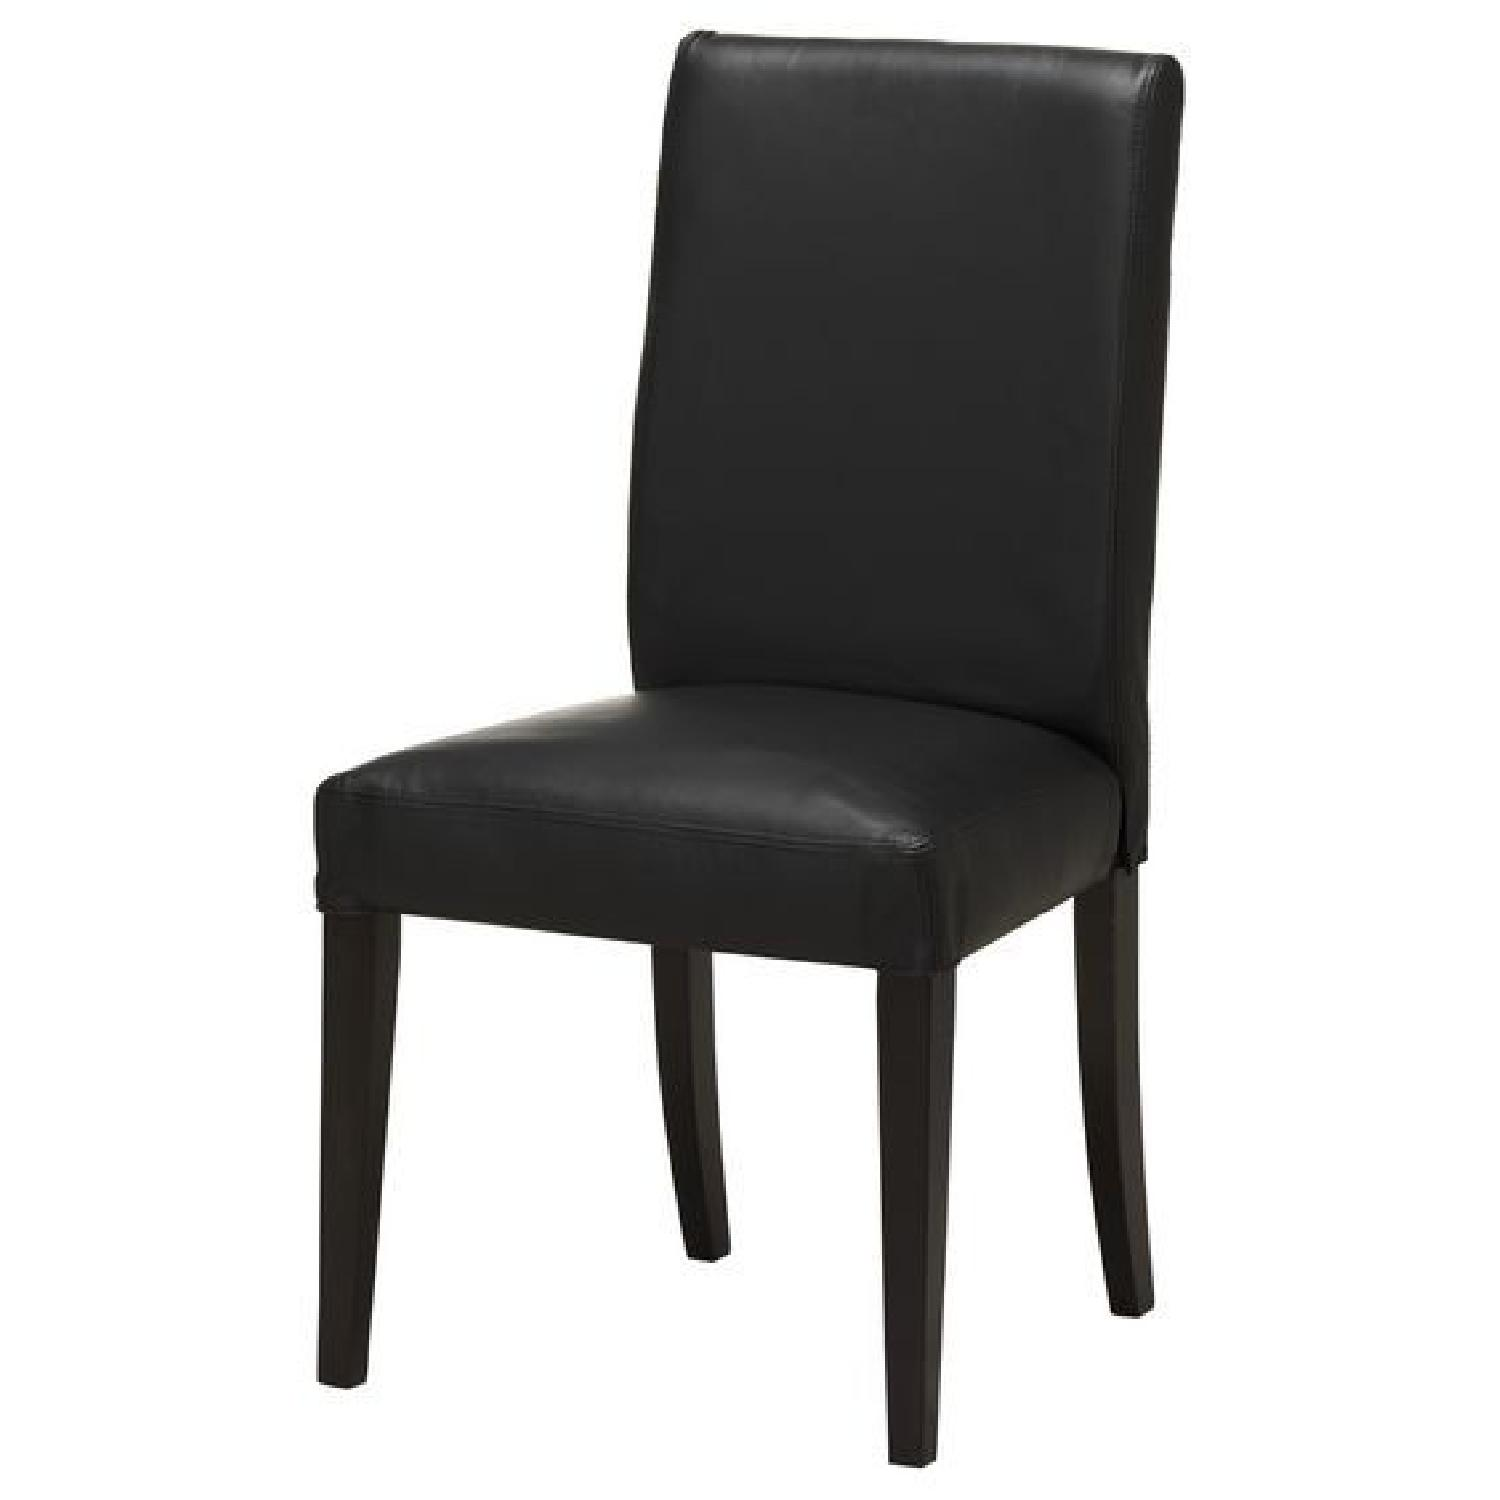 Ikea Black Faux Leather Chair   Per Set Of 2